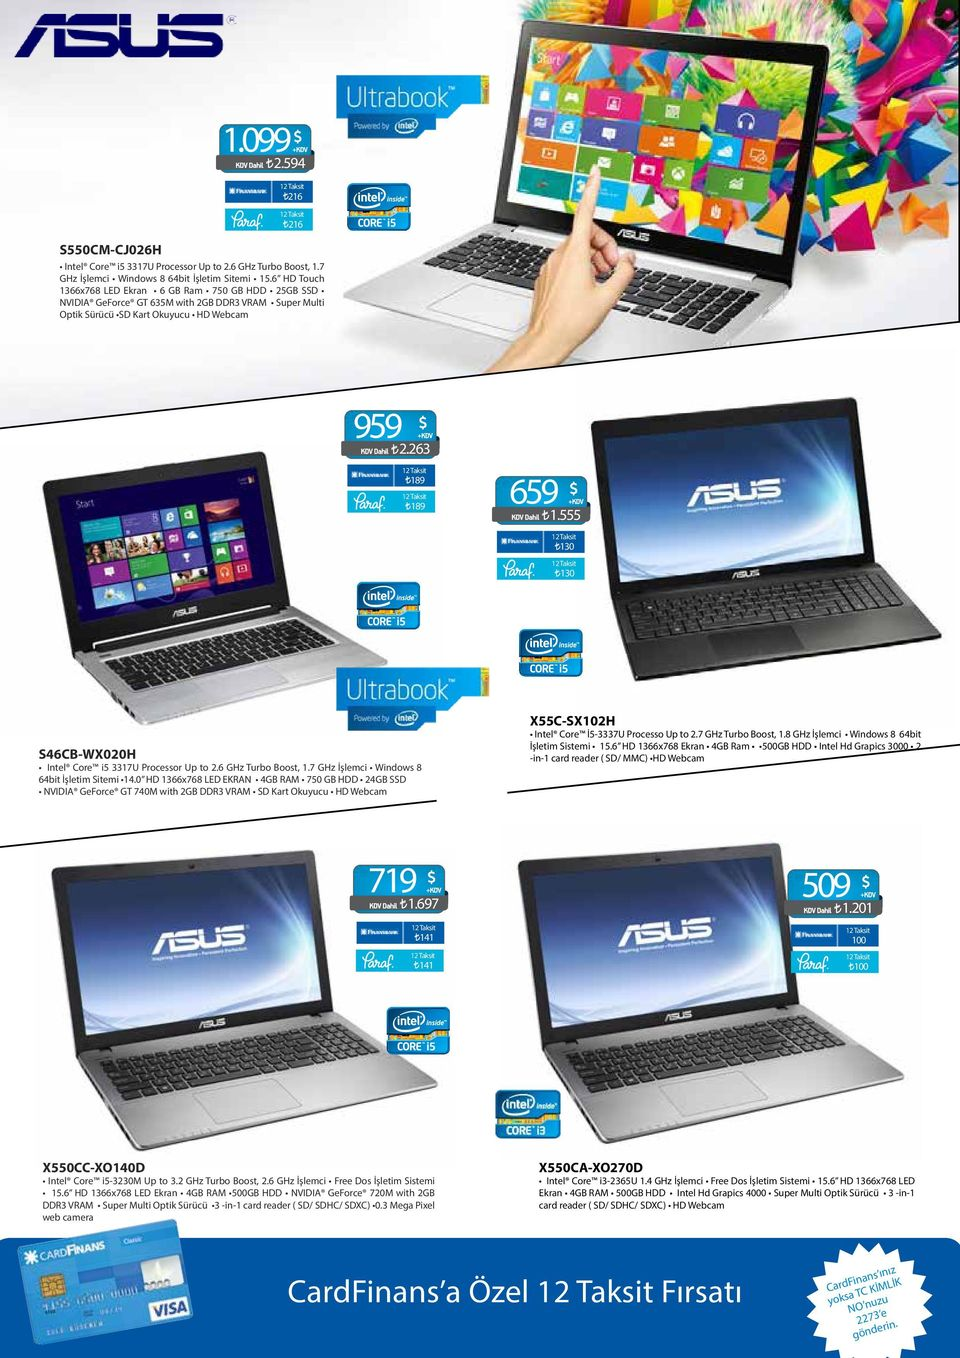 555 130 130 S46CB-WX020H Intel Core i5 3317U Processor Up to 2.6 GHz Turbo Boost, 1.7 GHz İşlemci Windows 8 64bit İşletim Sitemi 14.